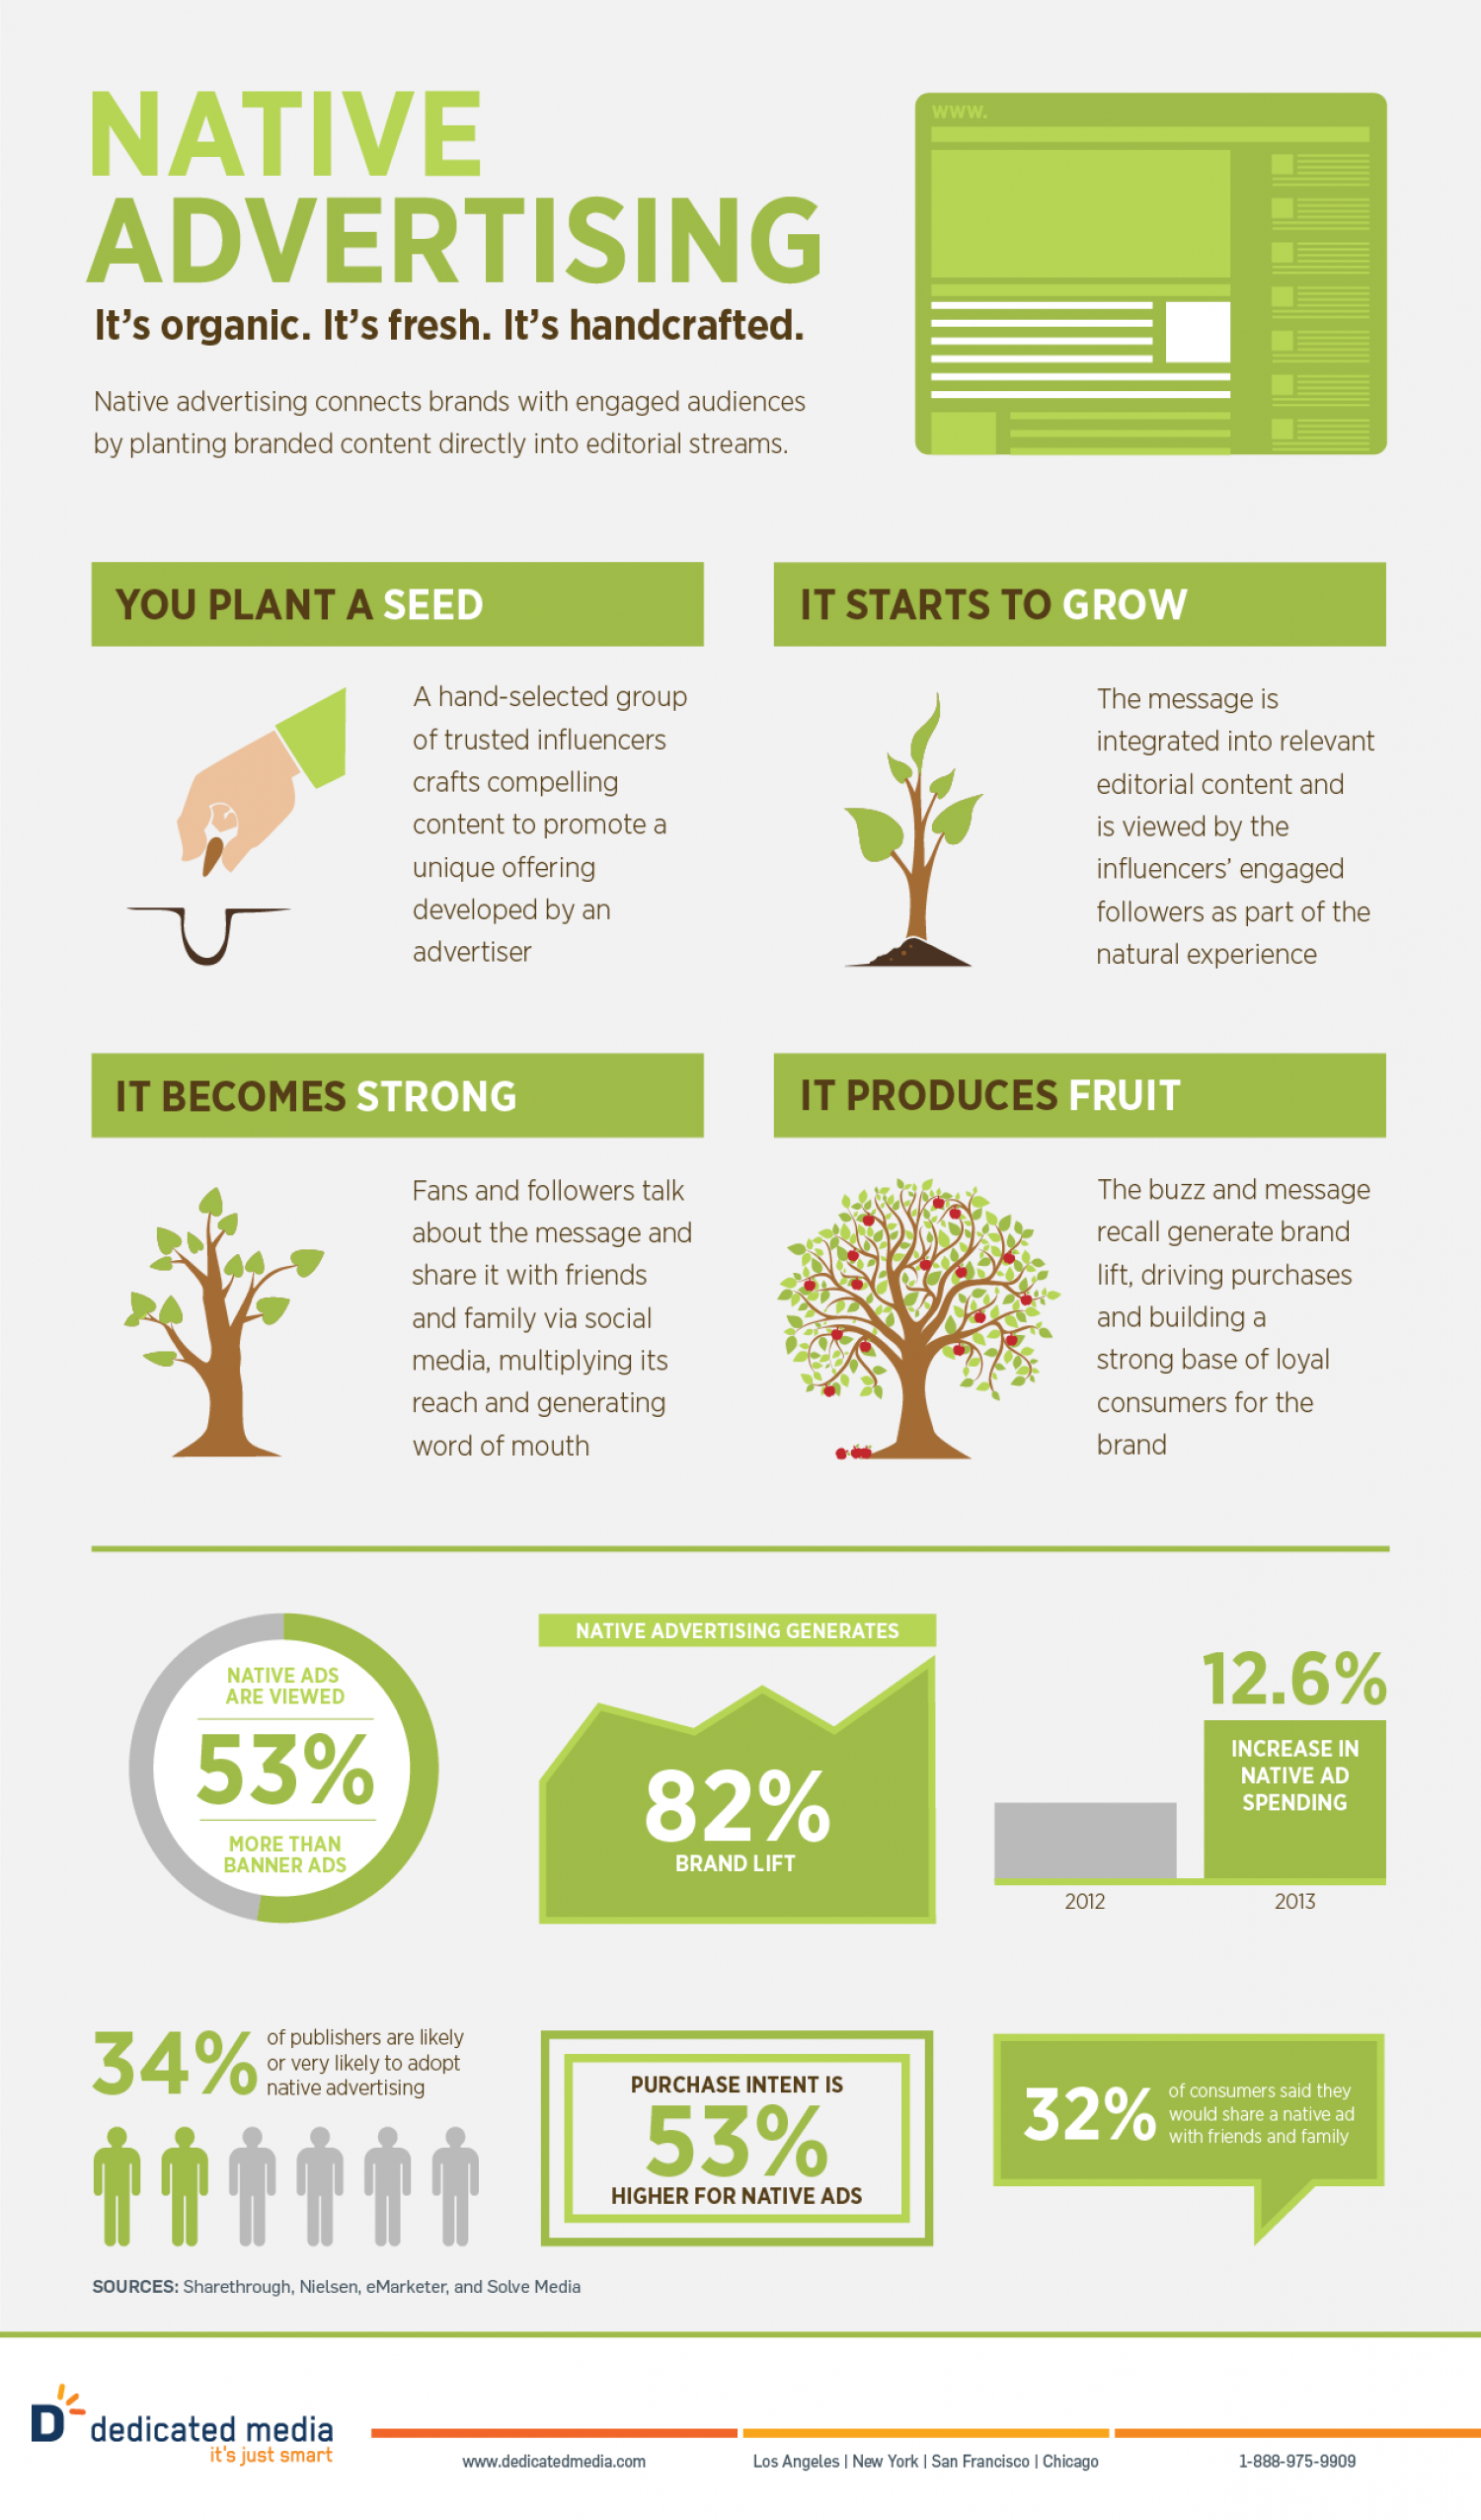 Native Advertising - It's organic. It's fresh. It's handcrafted. Infographic